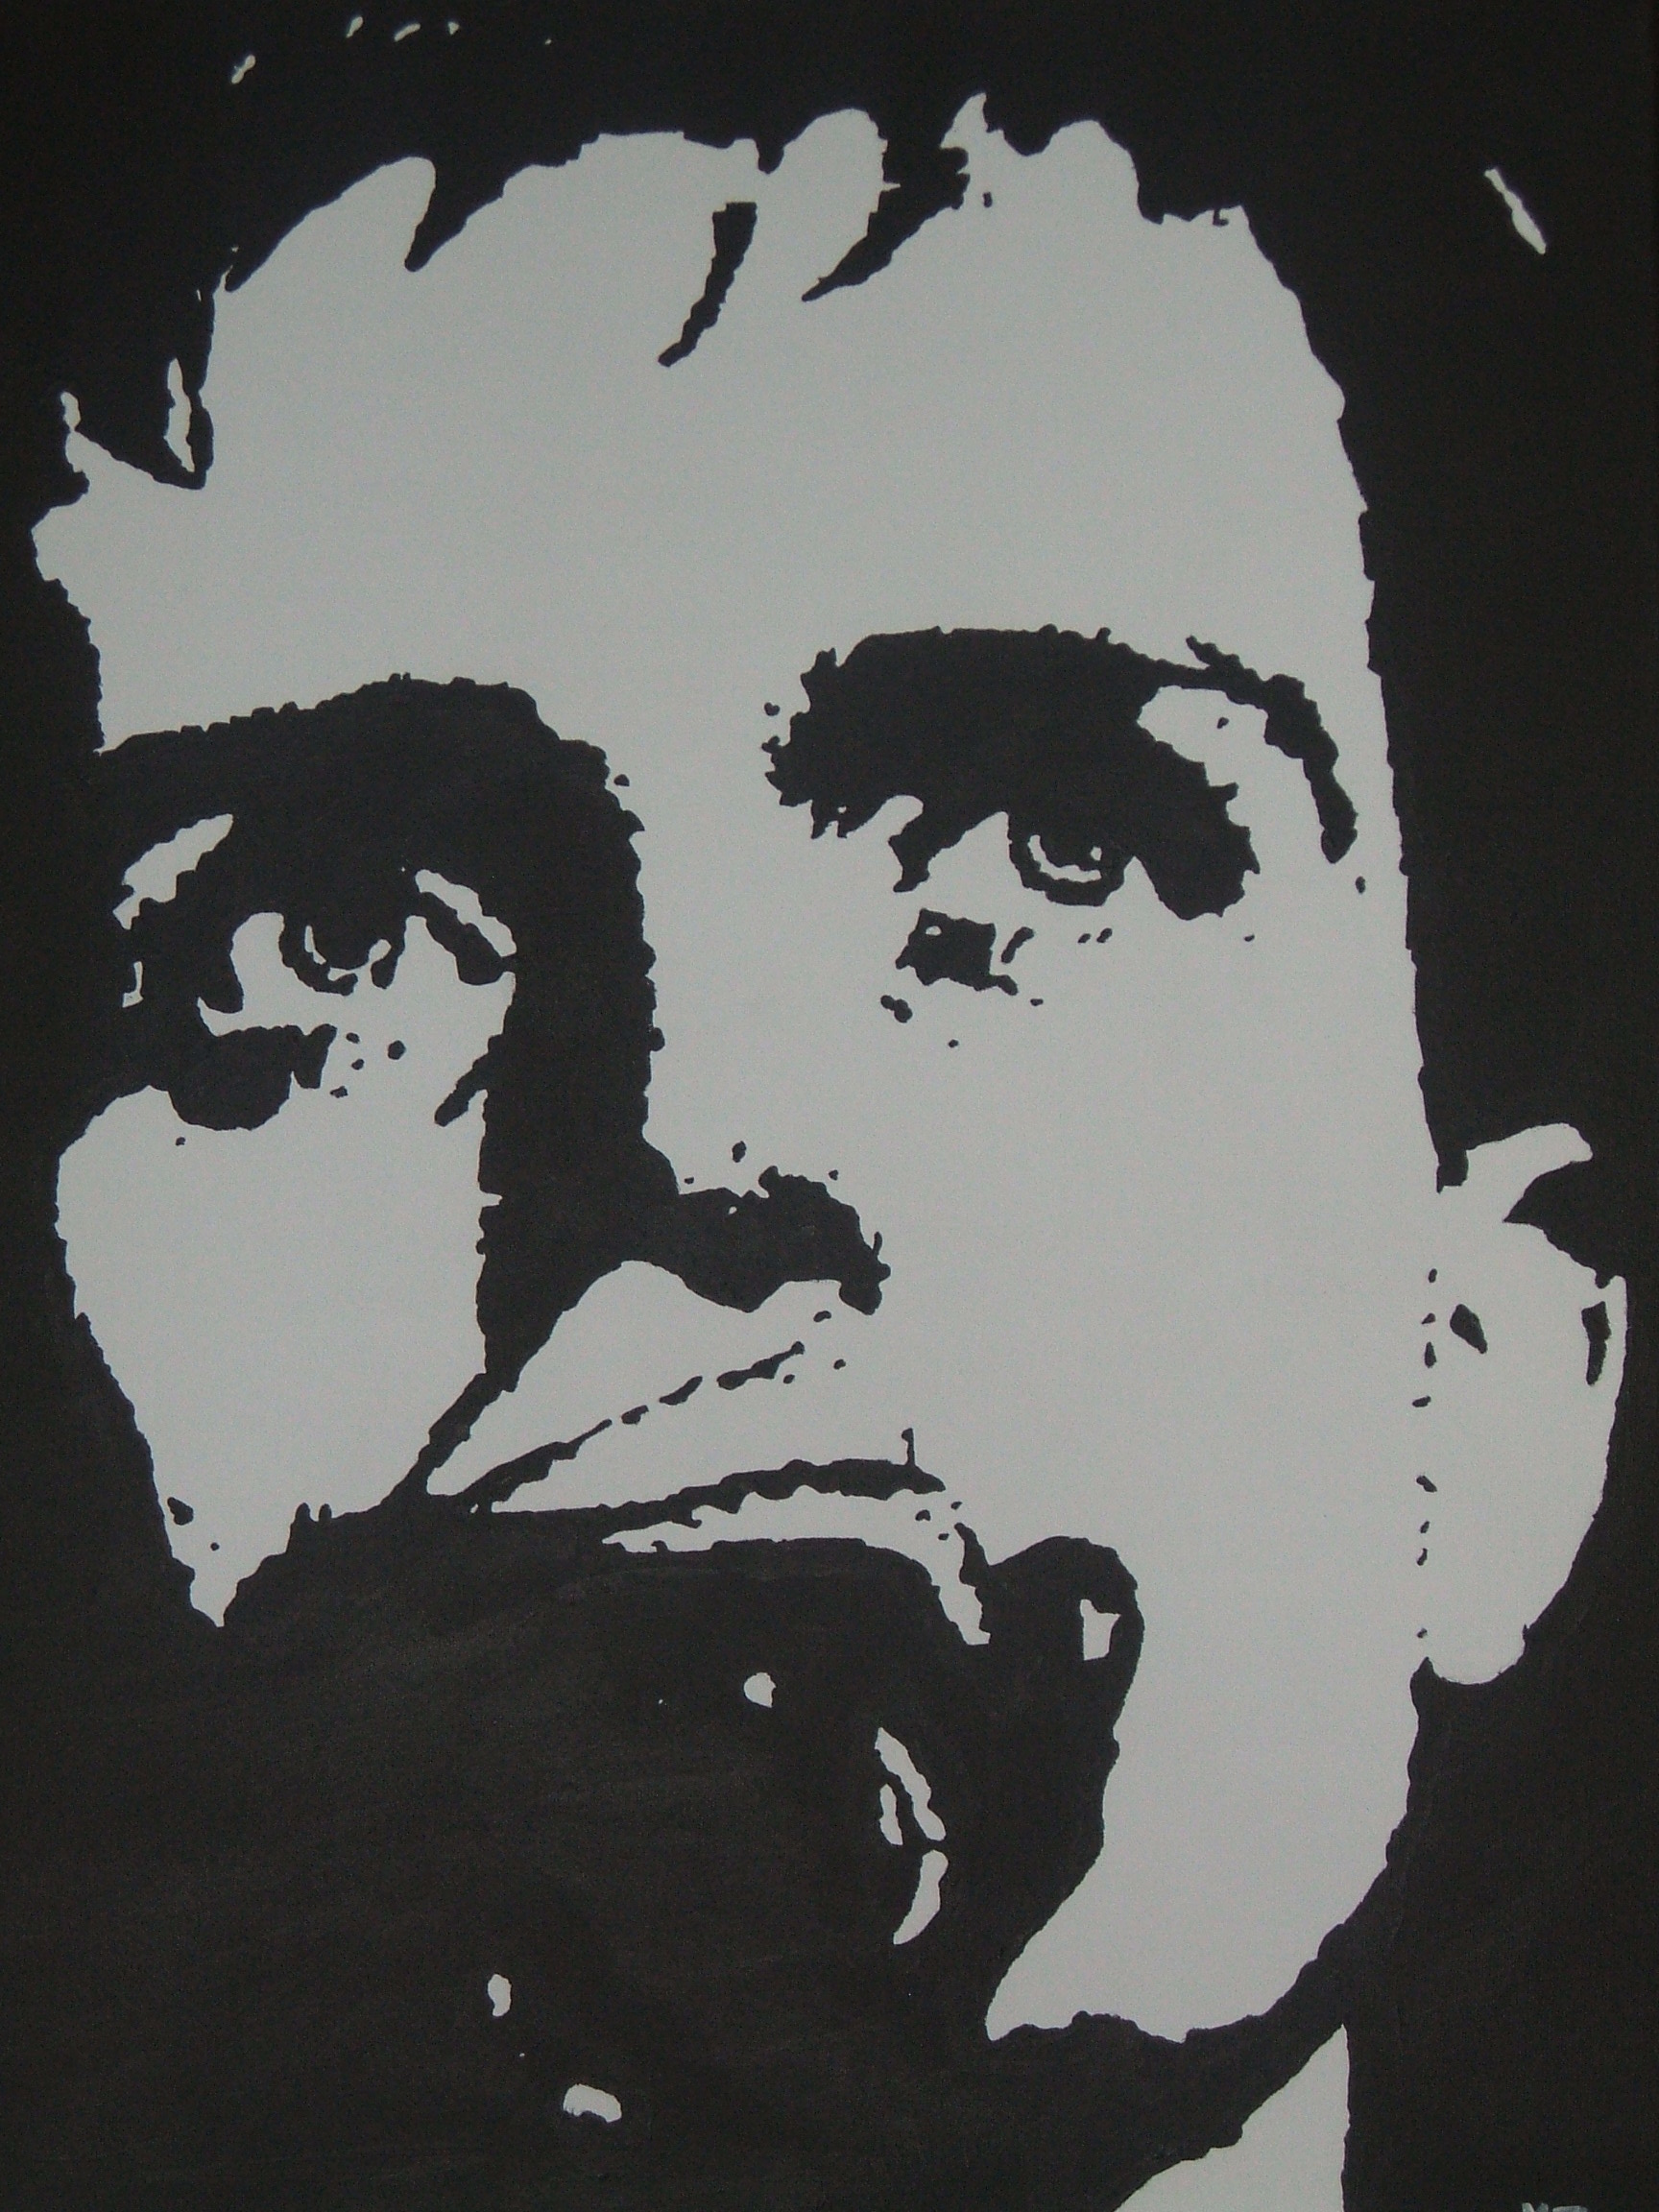 Ian Curtis (JD) Painting